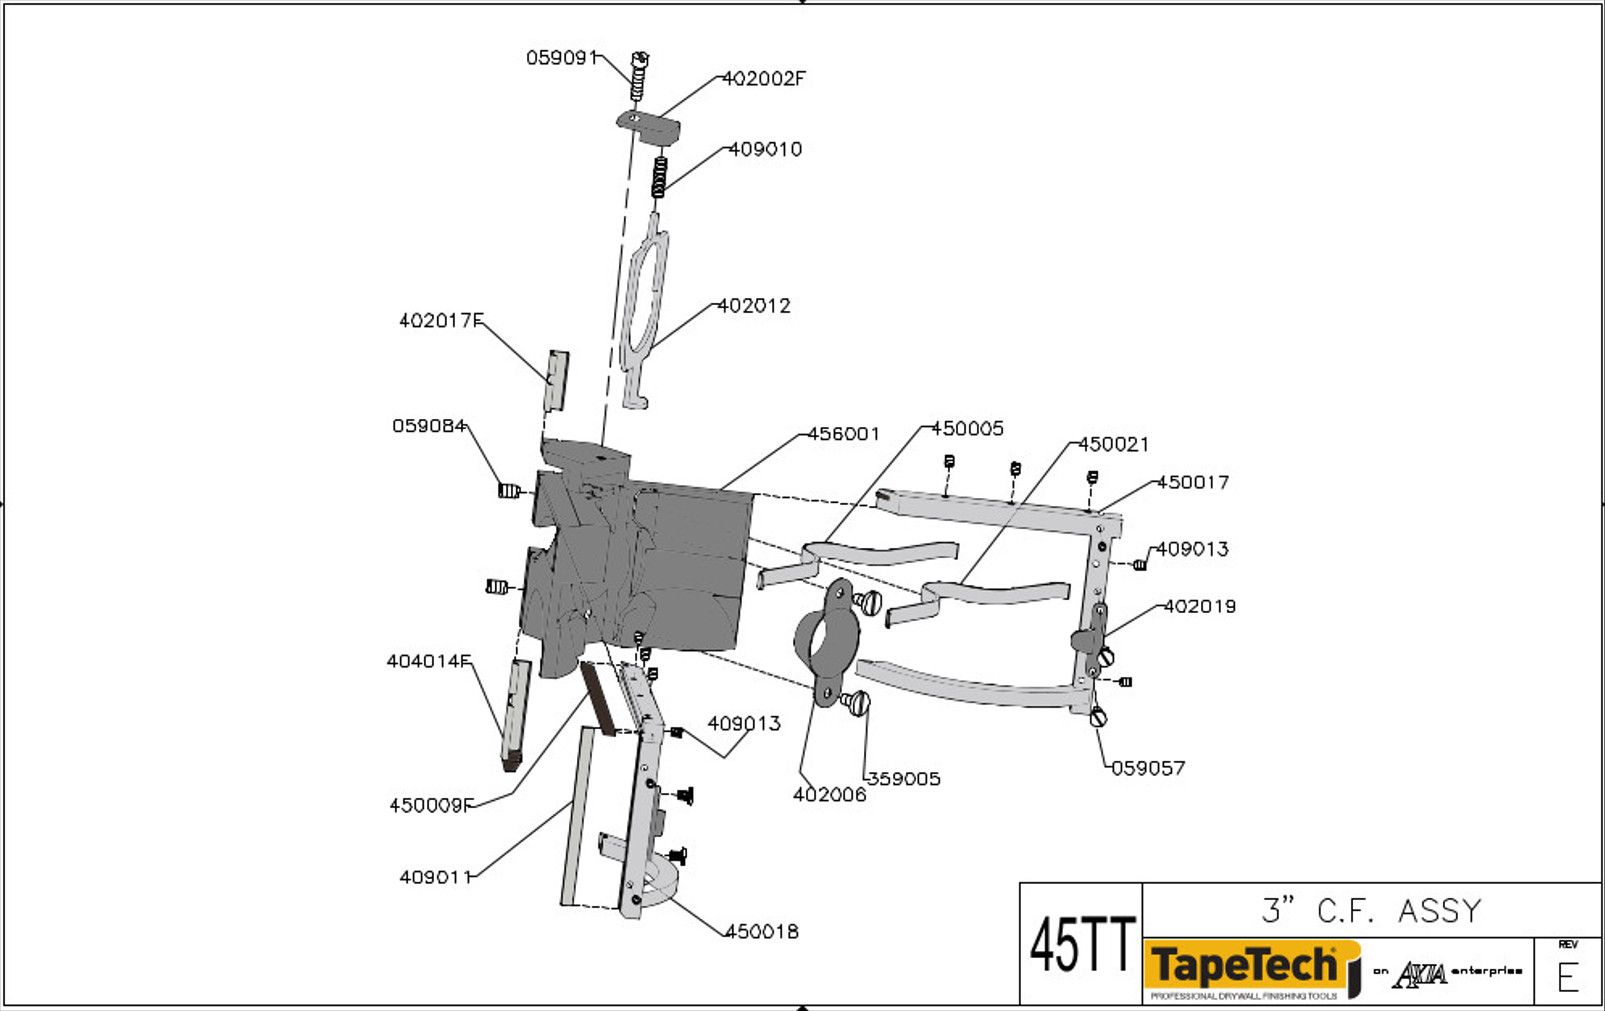 Tapetech Angle Head Parts